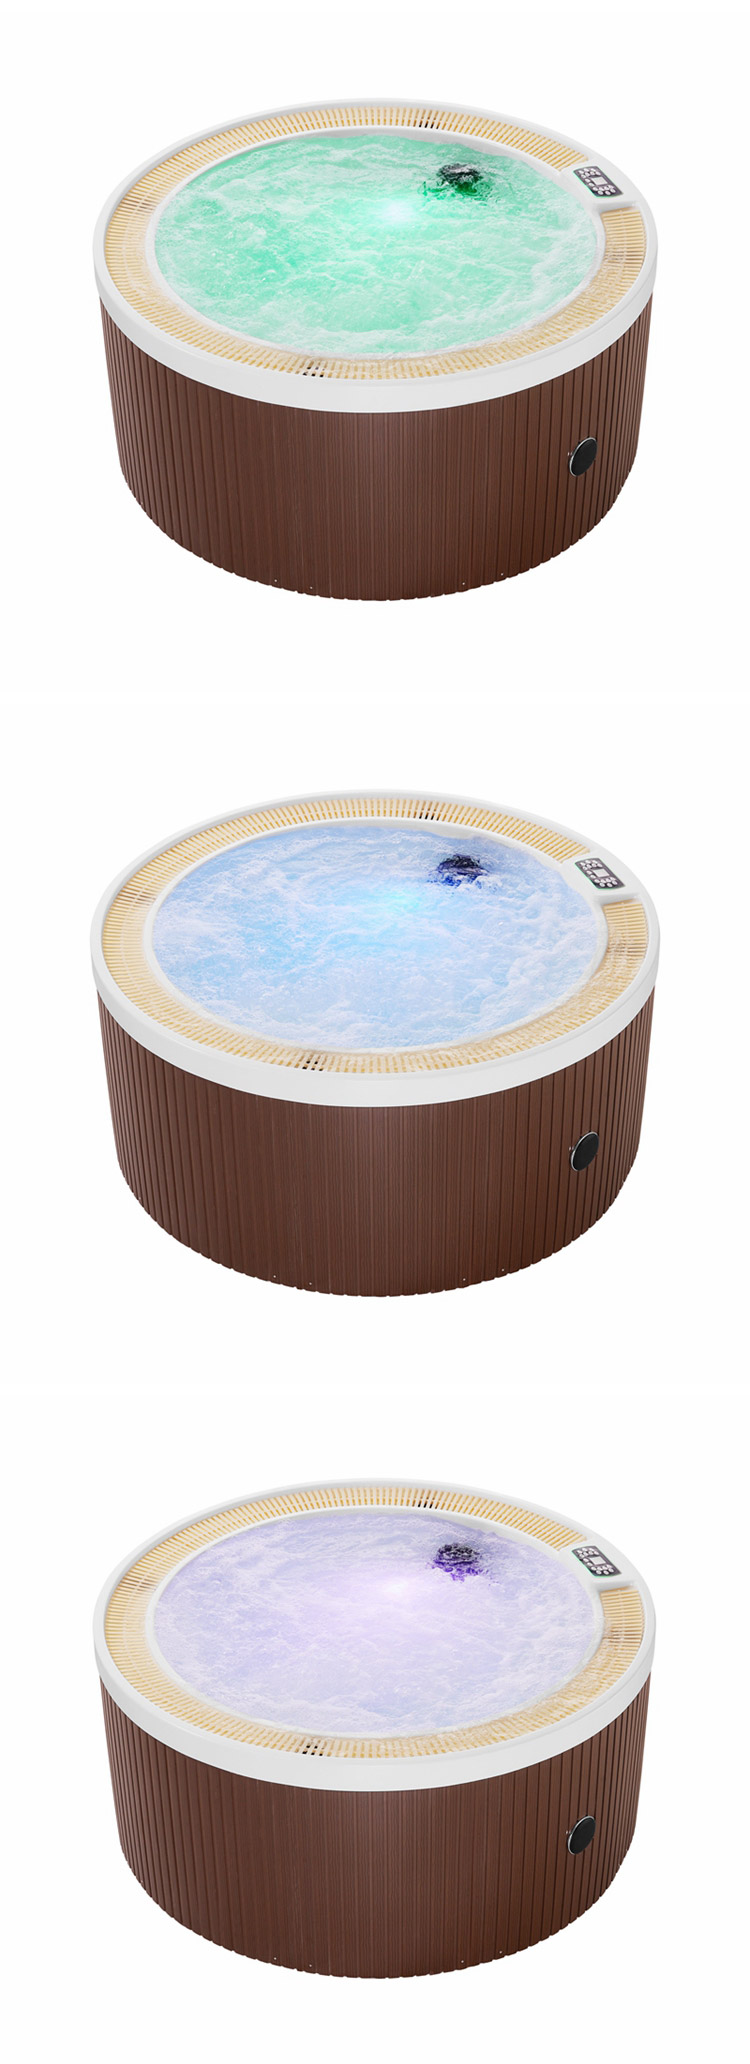 round spa/ balboa hot tub outdoor used/ outdoor spas hot tubs 3000 liter